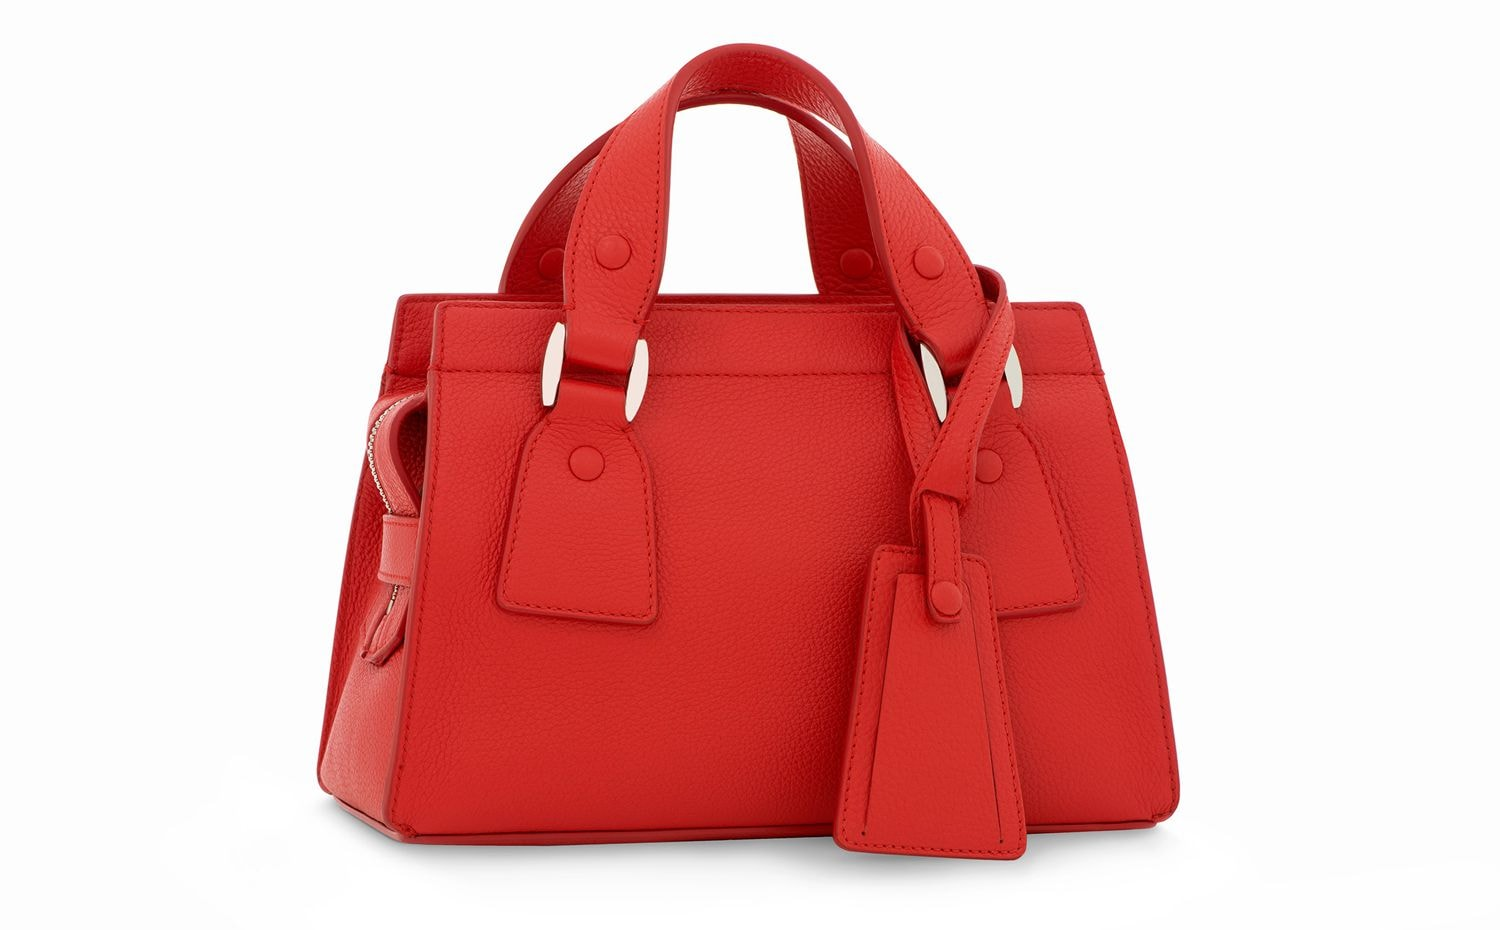 Armani/Marina Bay: GIORGIO ARMANI Le Sac 11 Classic Small in Red